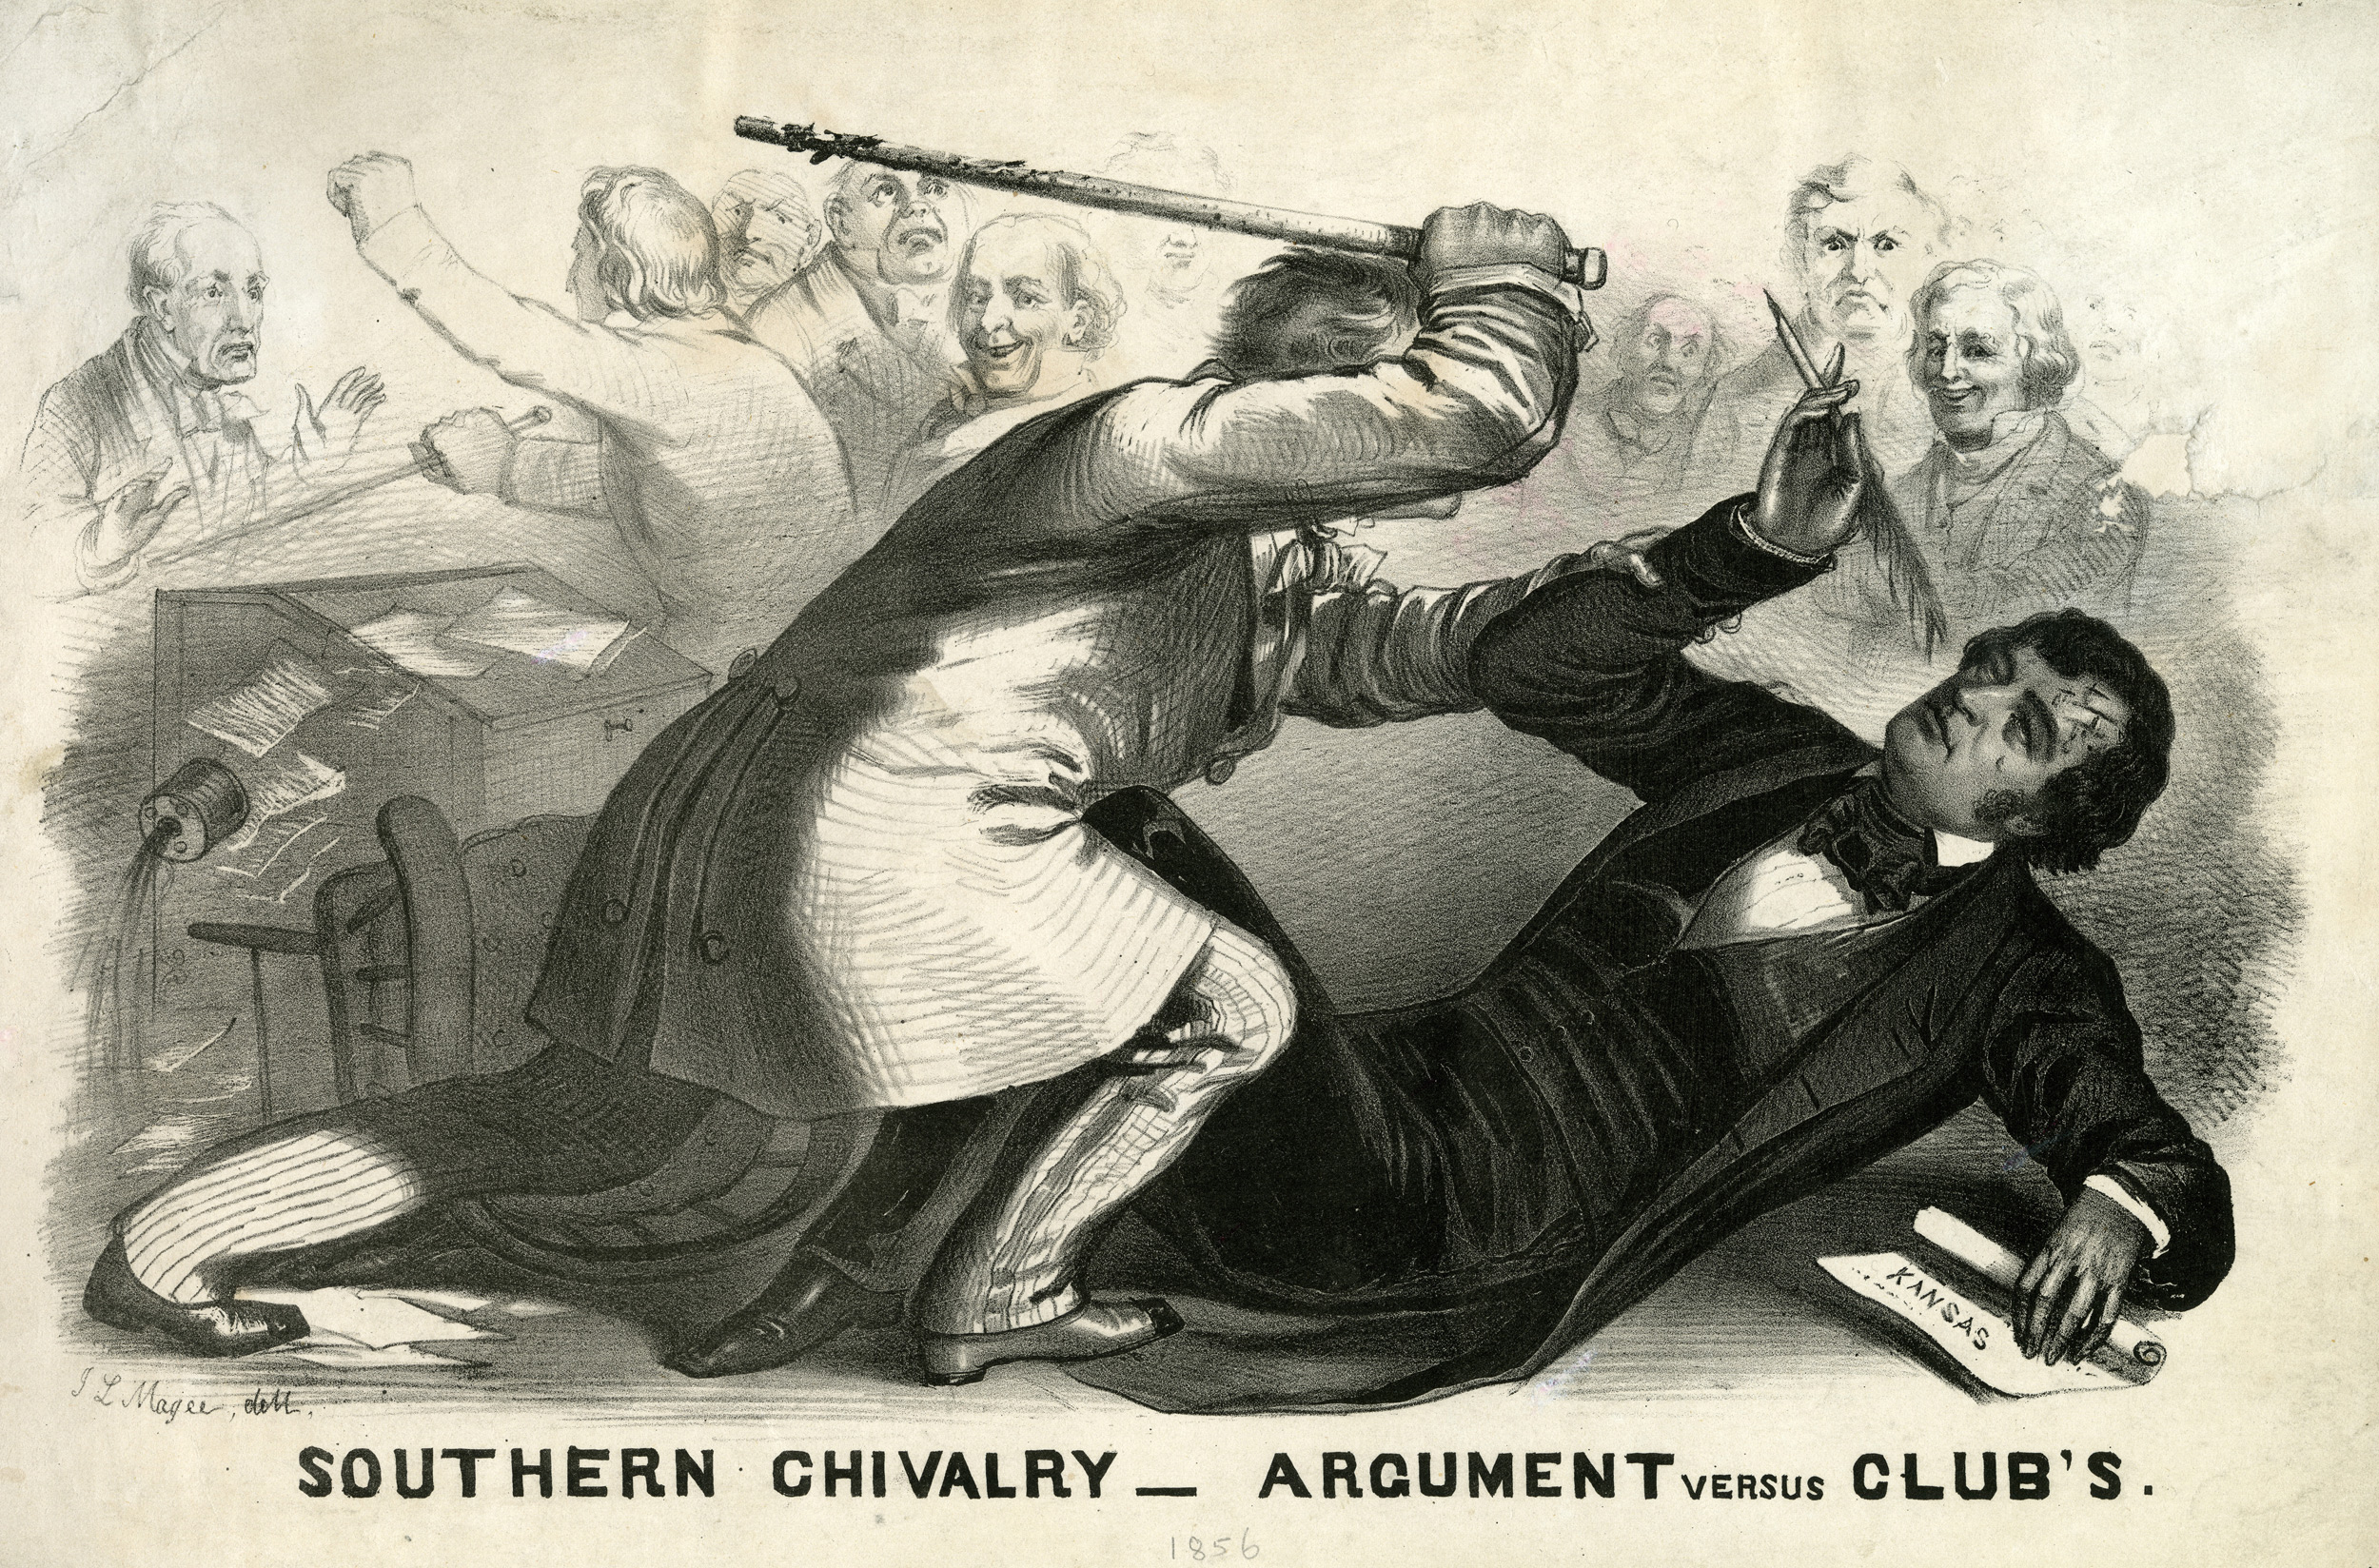 File:Southern Chivalry.jpg